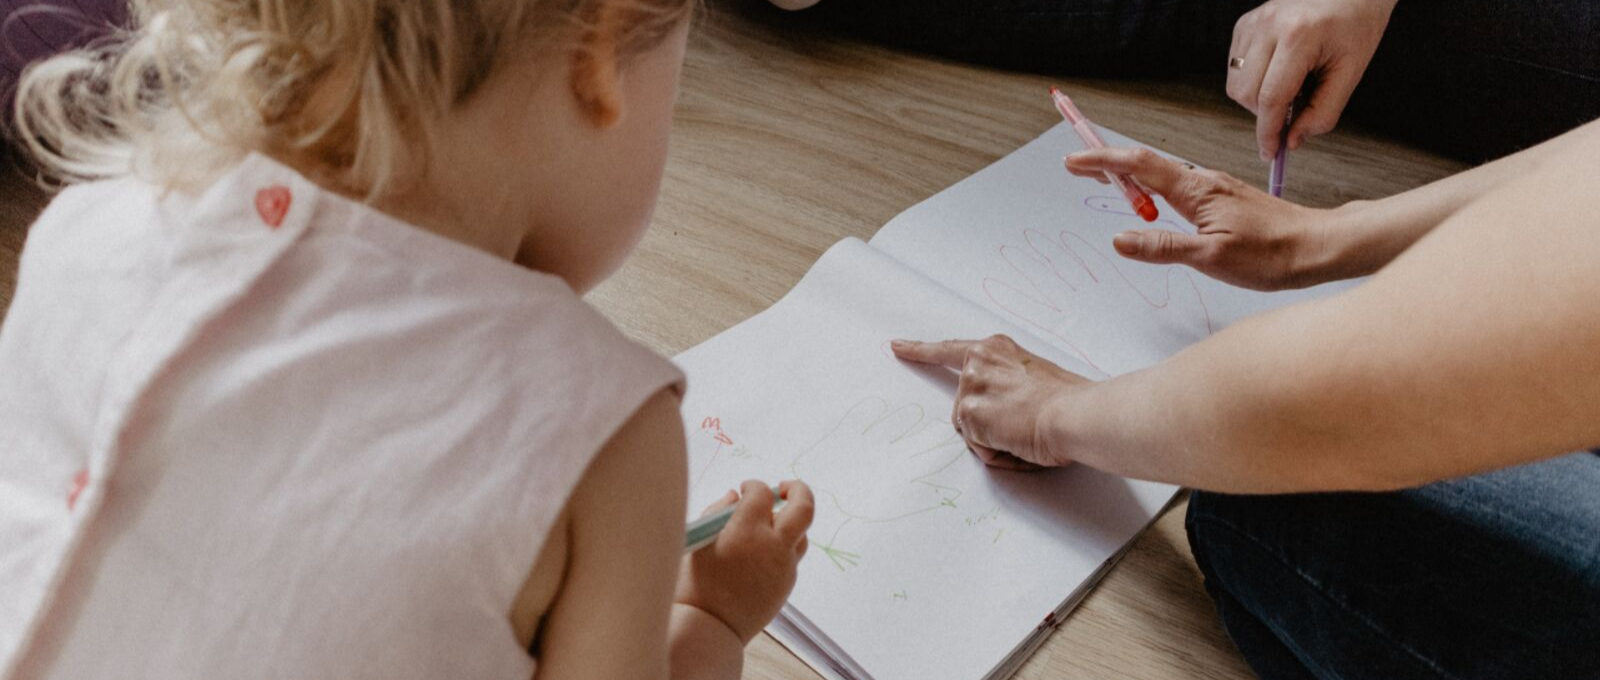 Parenting raising writer by playing and drawing with them on floor